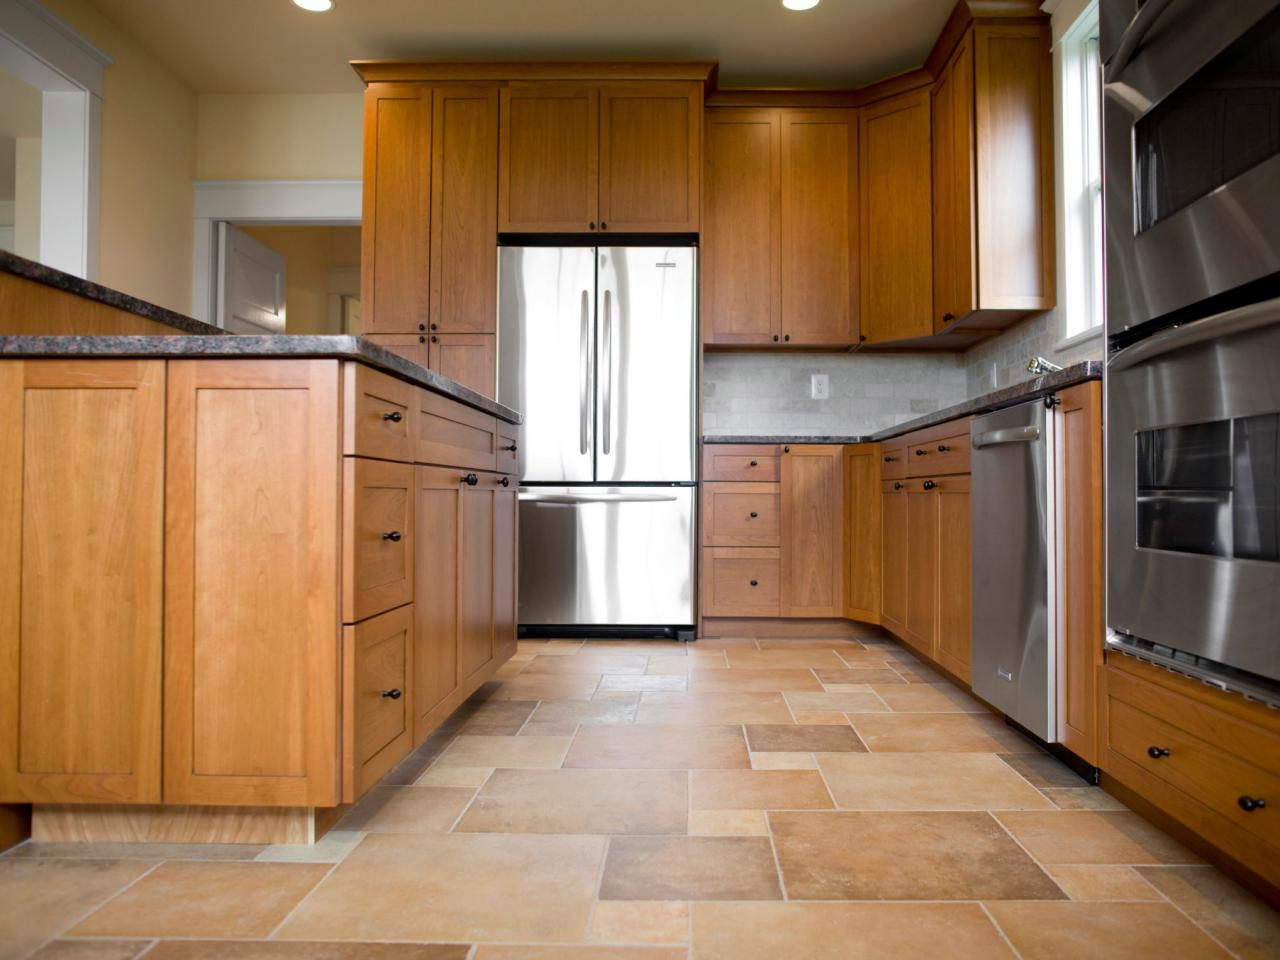 Choose the Best Flooring for Your Kitchen | HGTV on back porch floors, travertine floors, linen floors, woodshop floors, updated bathroom floors, model home floors, bedroom floors, small bathroom floors, art floors, formica floors, cabin floors, vintage camper floors, laundry room floors, upcycled floors, family room floors, patio floors, exterior entrance floors, dining floors, classroom floors, living room floors,